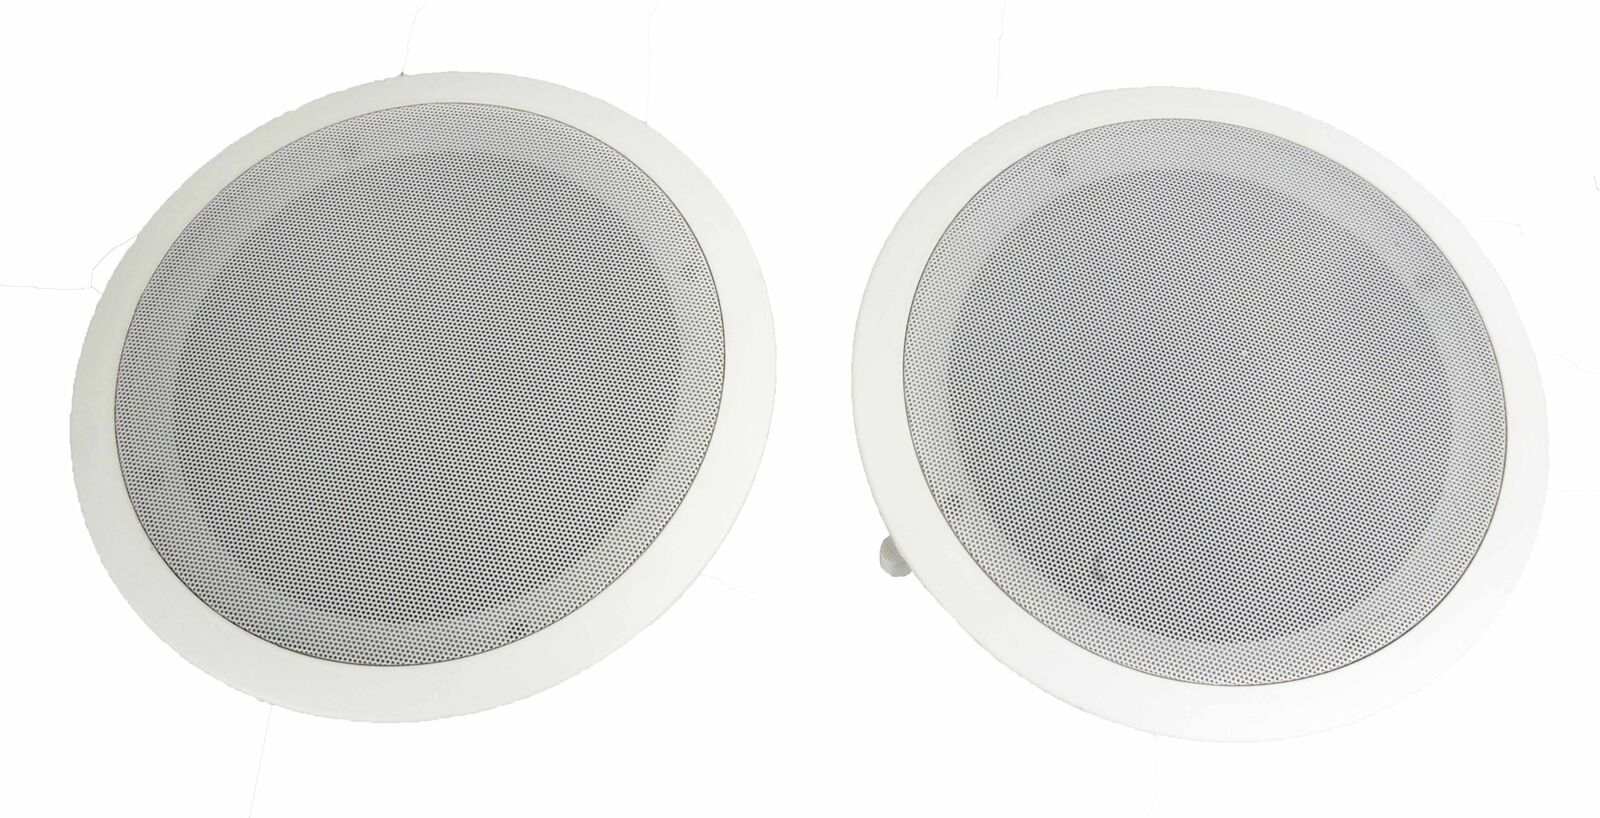 Pyle 8 Inch 500W 2 Way In Wall Ceiling Home Speakers System Audio Stereo (Pair)